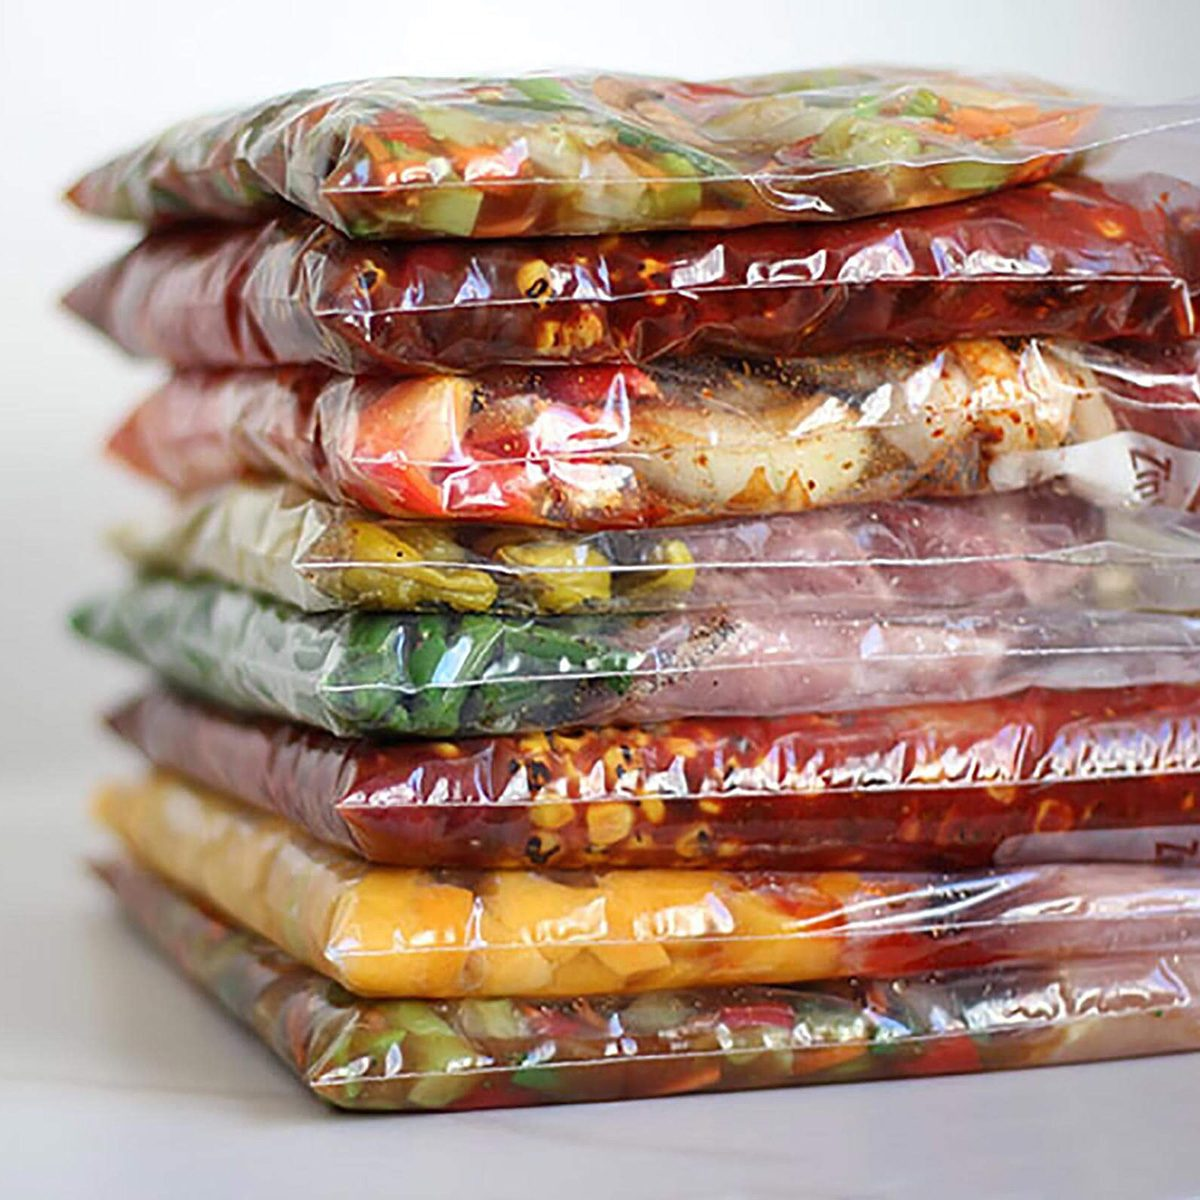 Meals layered in plastic bags